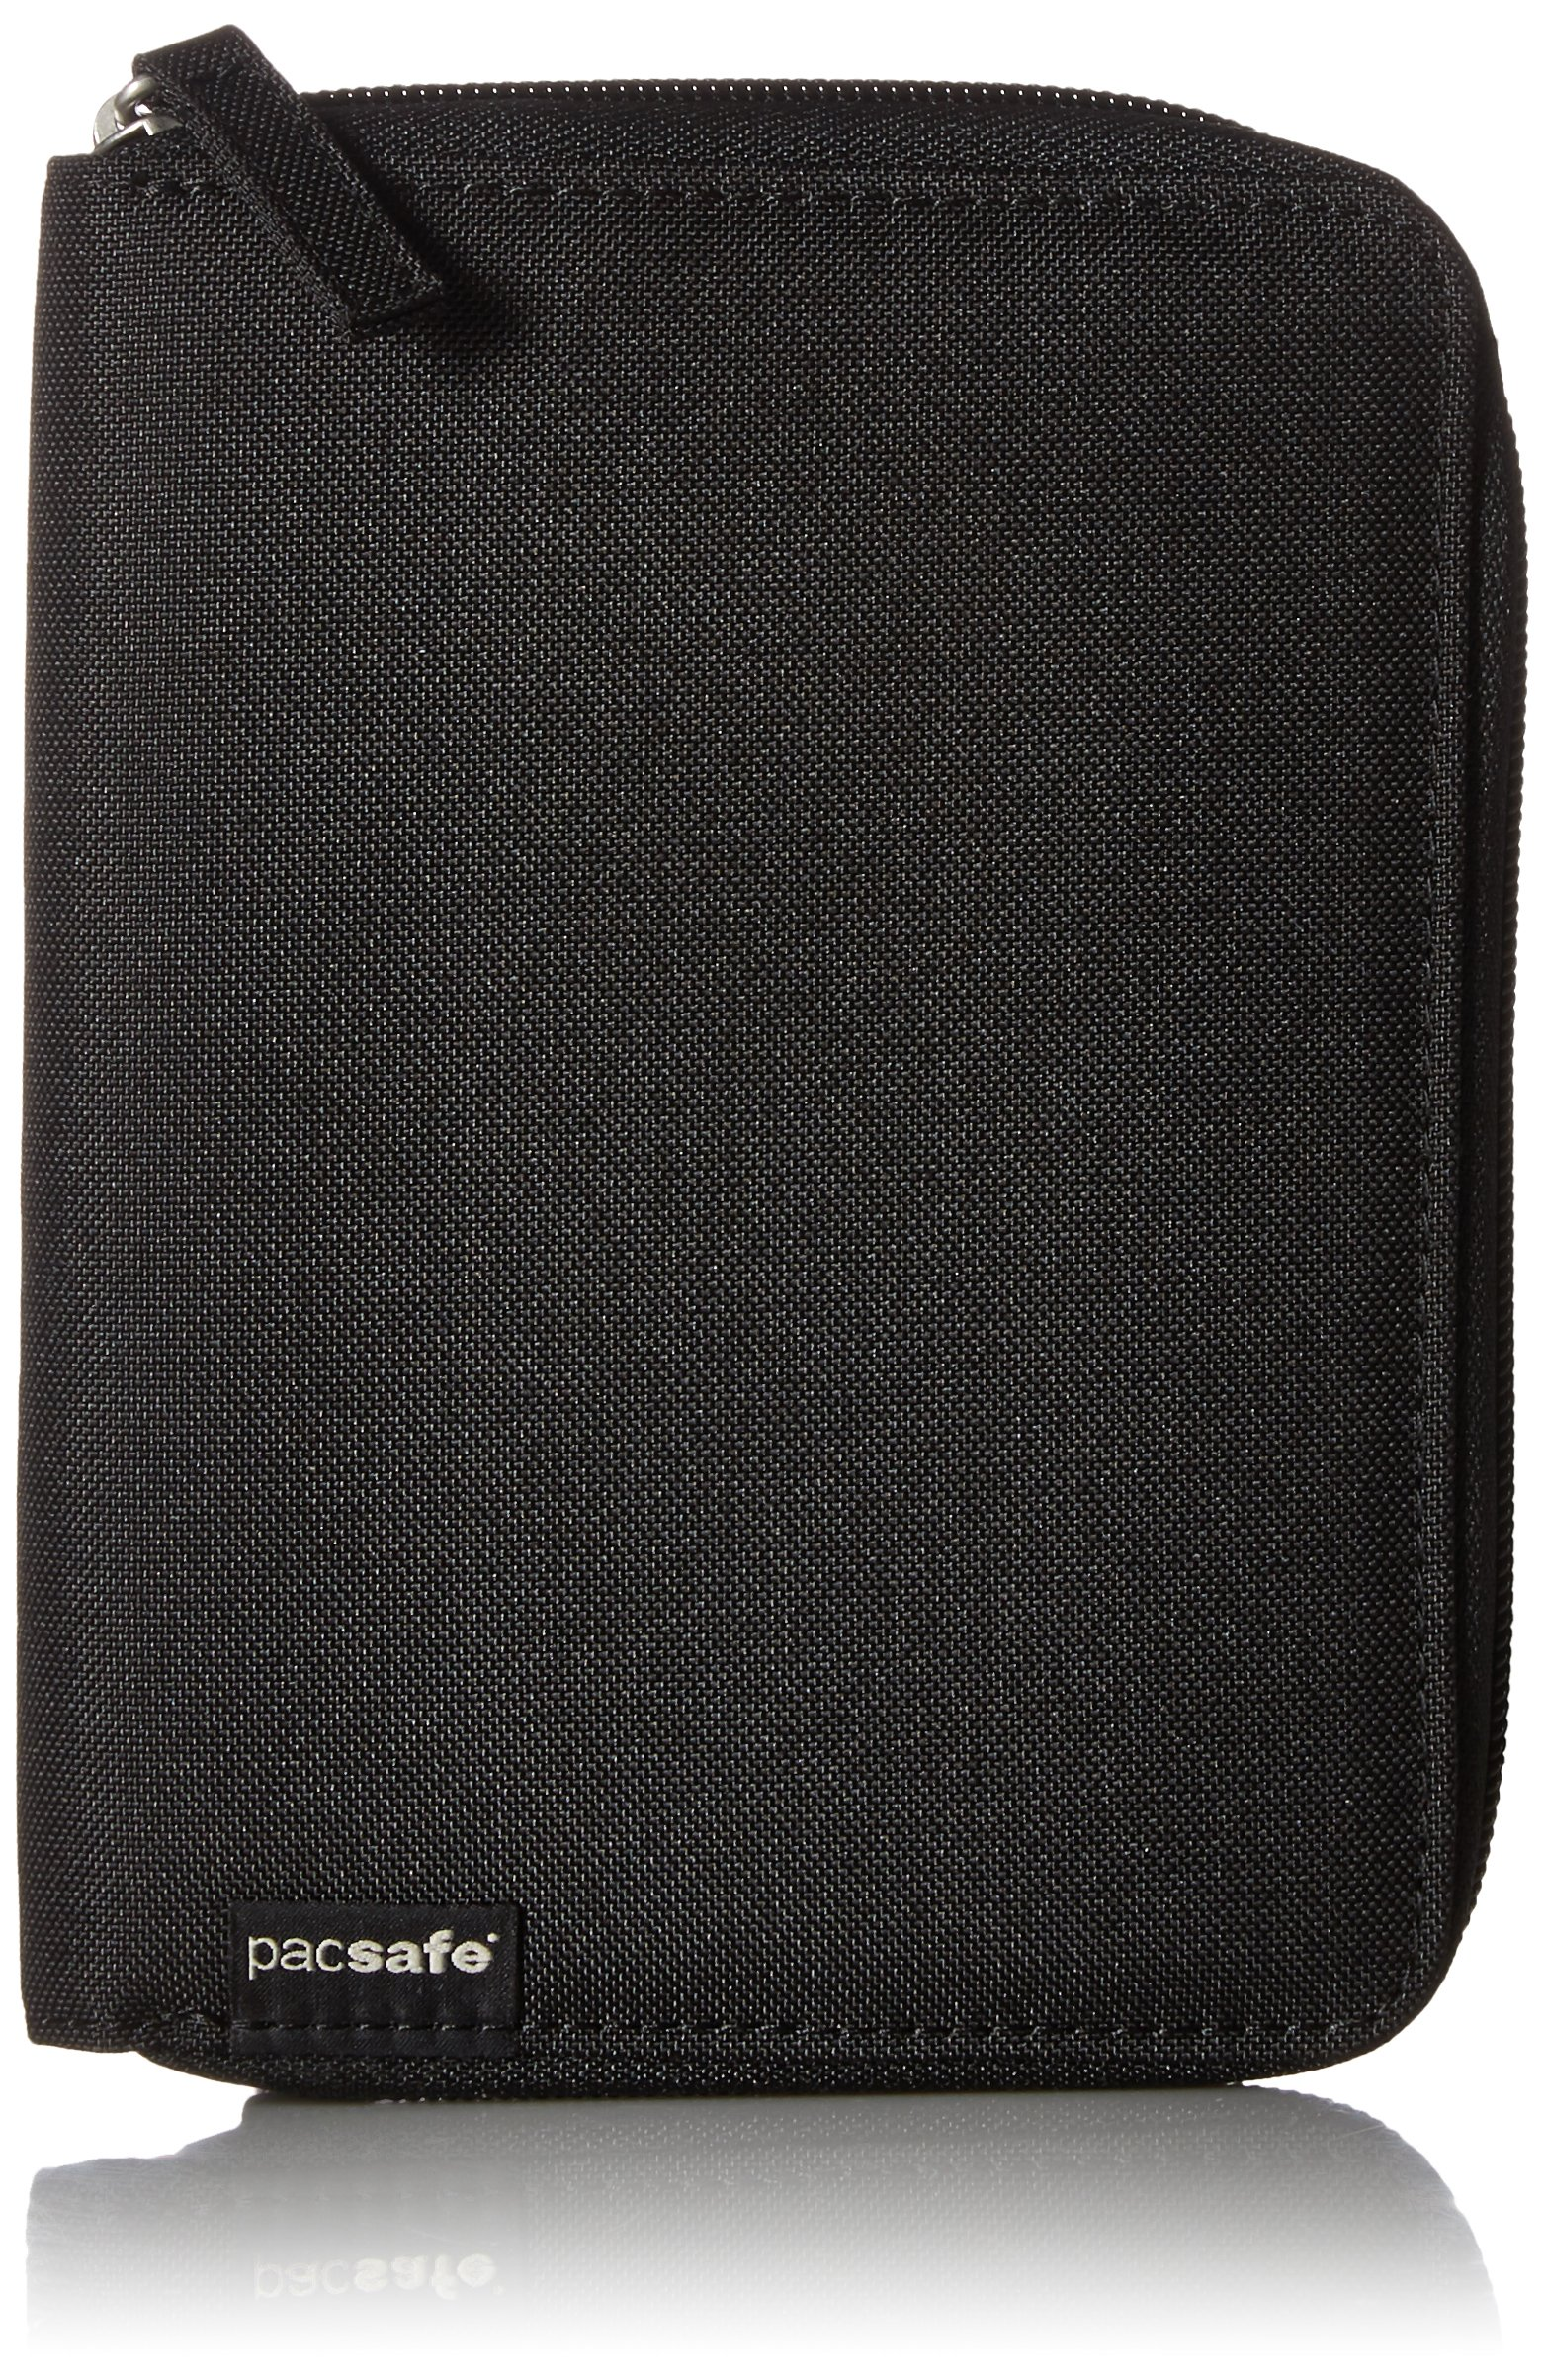 Pacsafe RFIDsafe LX150 Anti-Theft RFID Blocking Passport Wallet, Black